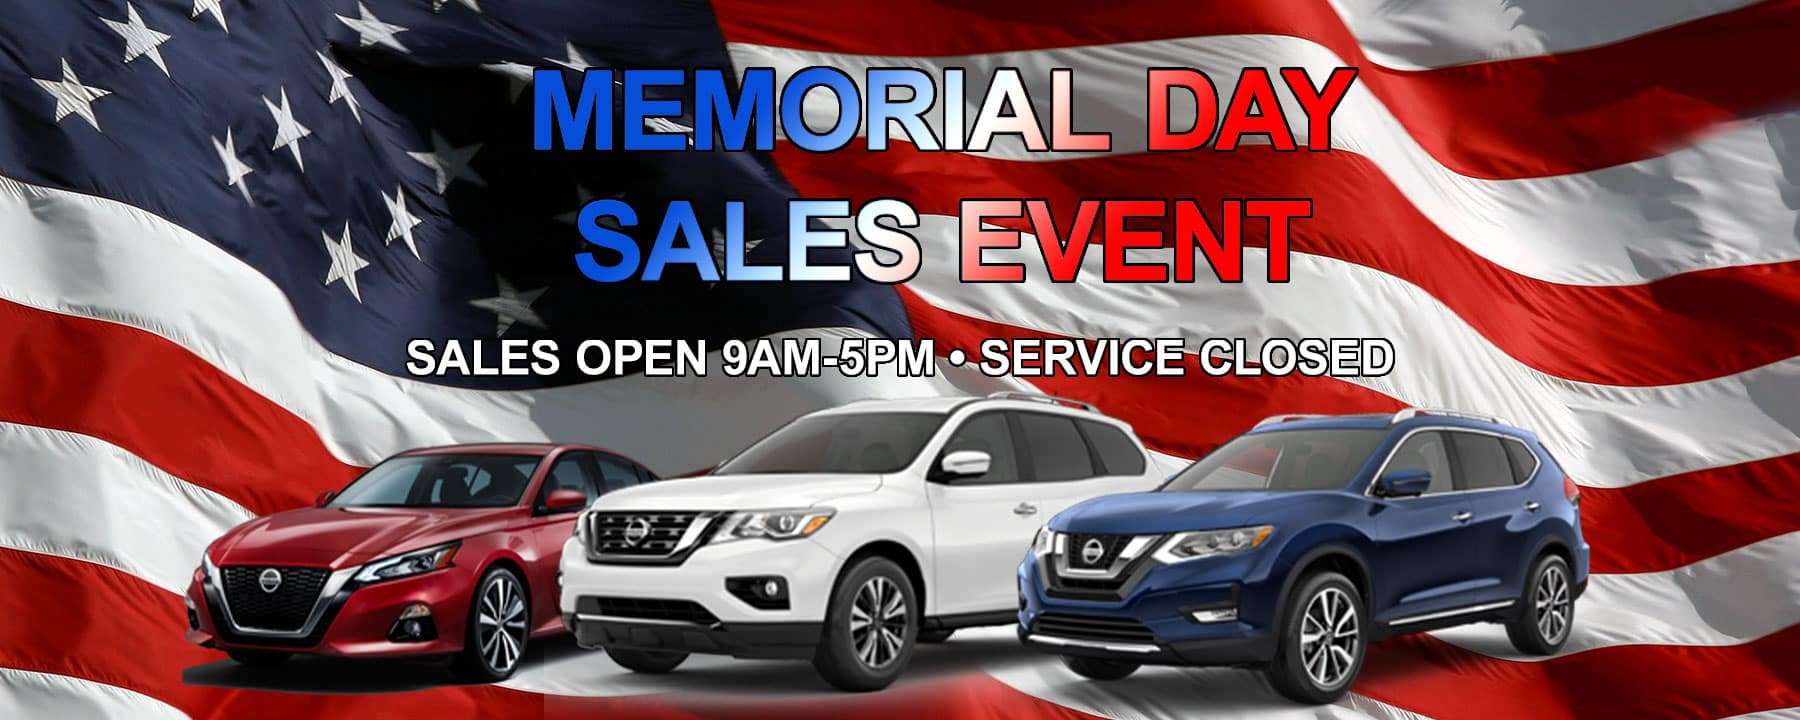 Memorial Day Sales Event Hours at Berman Nissan of Chicago!